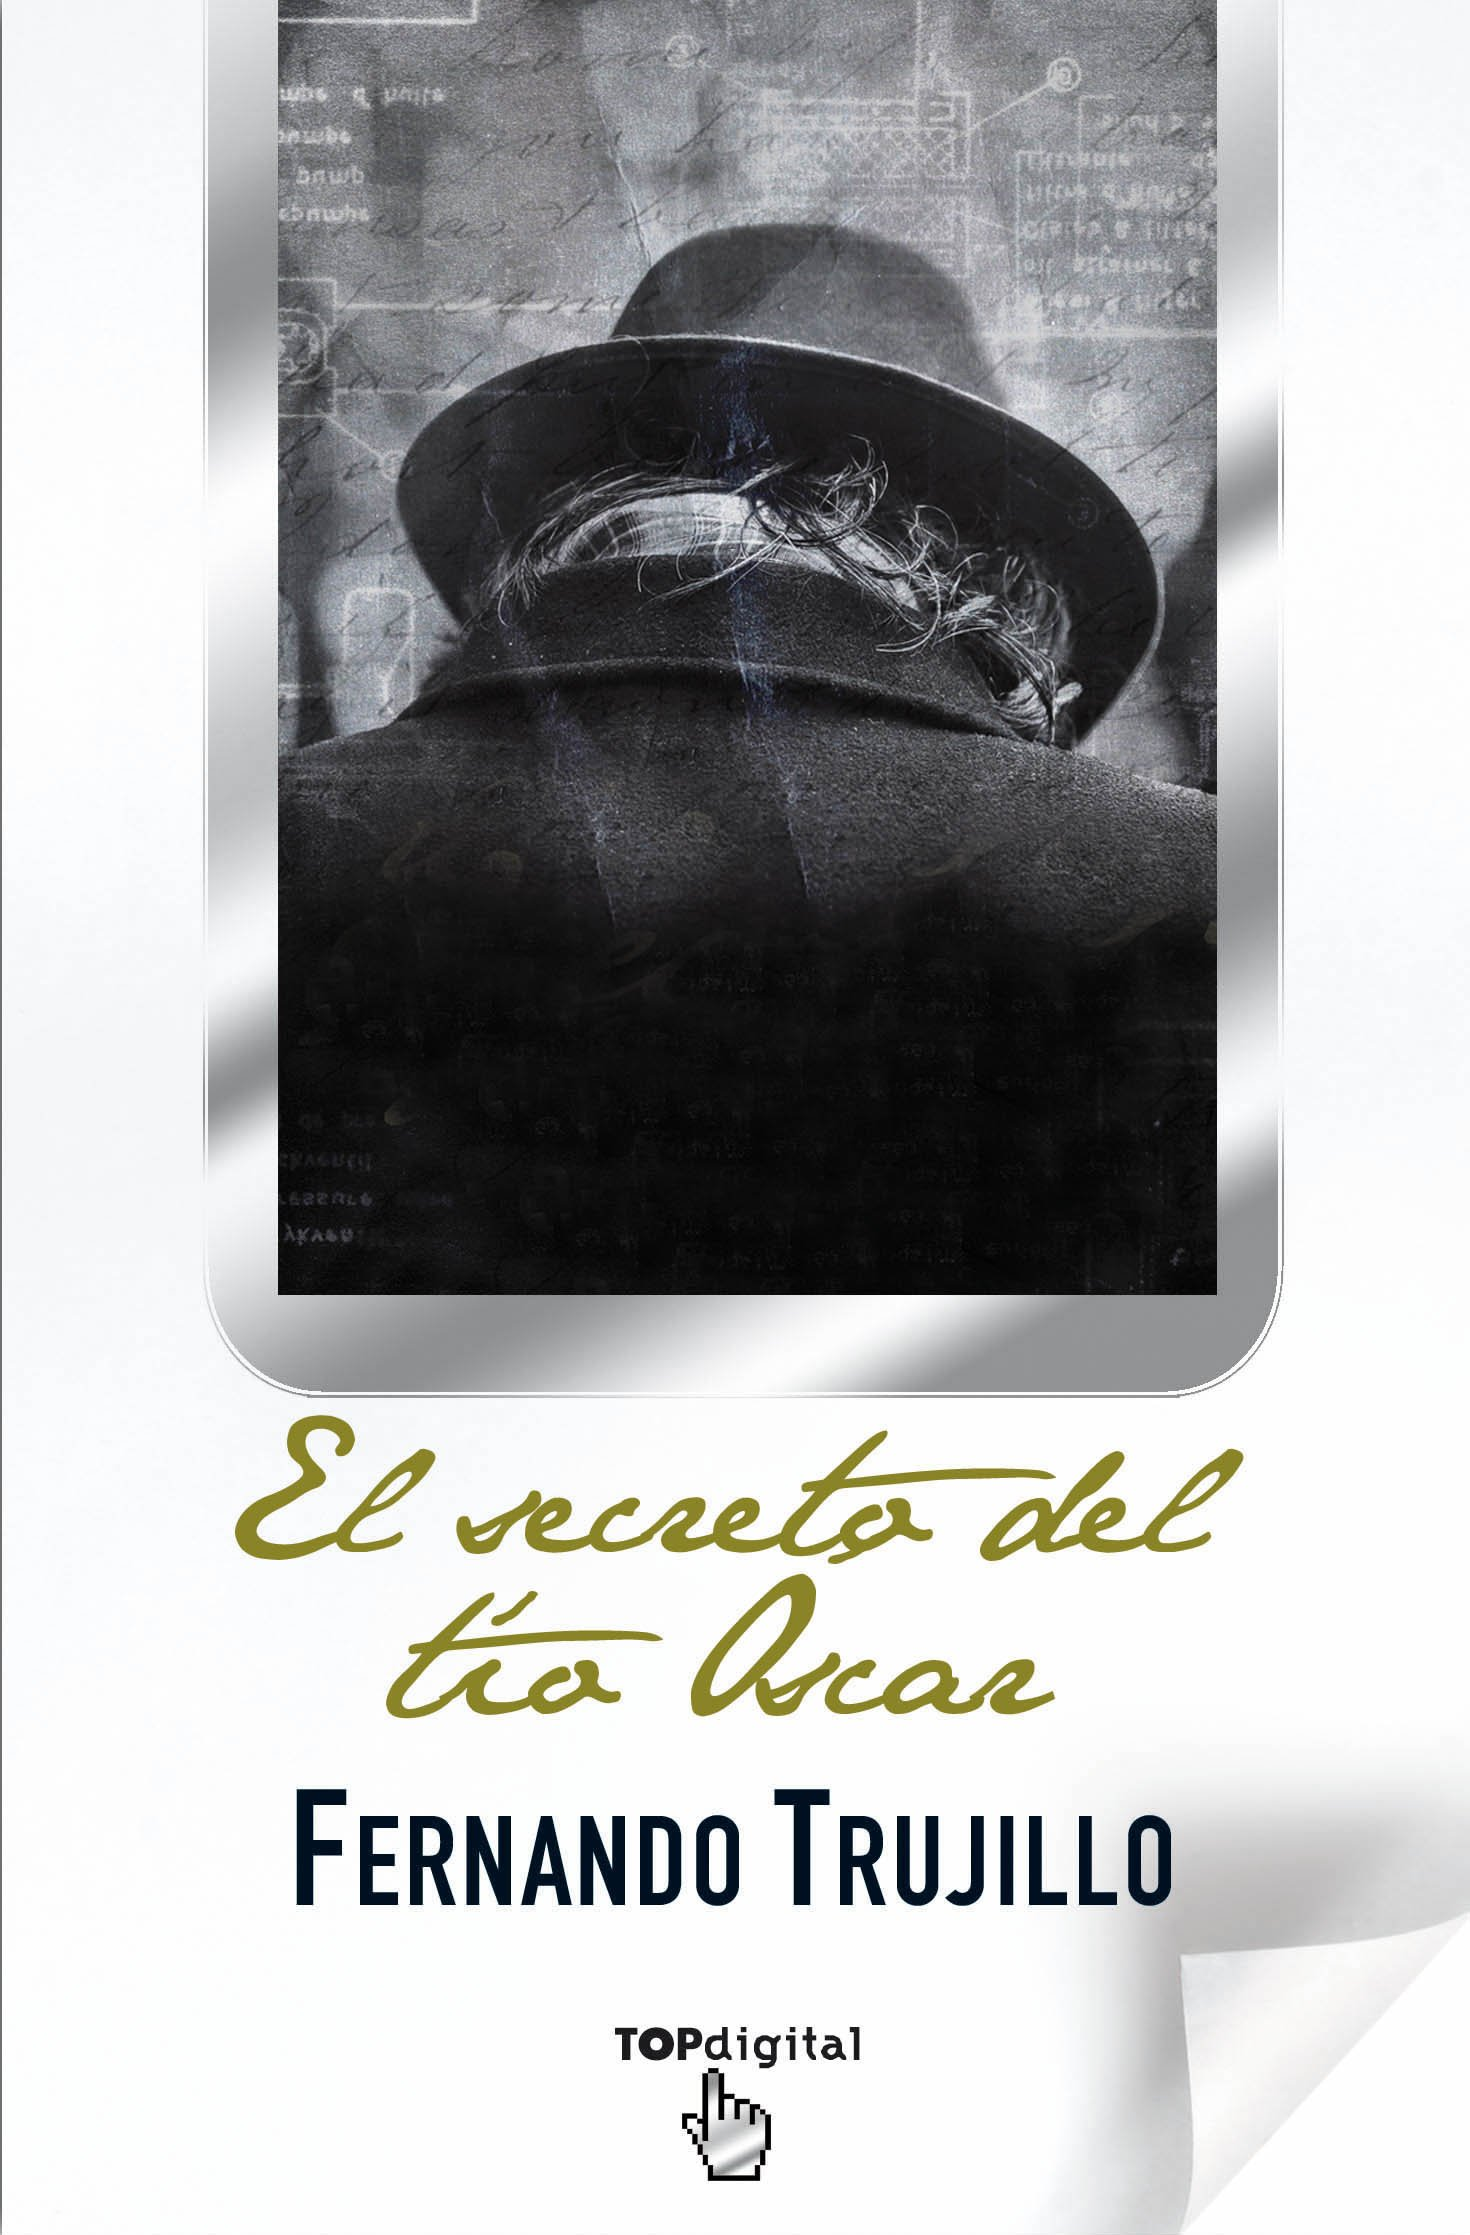 El secreto del tio Oscar (Spanish Edition): Fernando Trujillo: 9788498726435: Amazon.com: Books